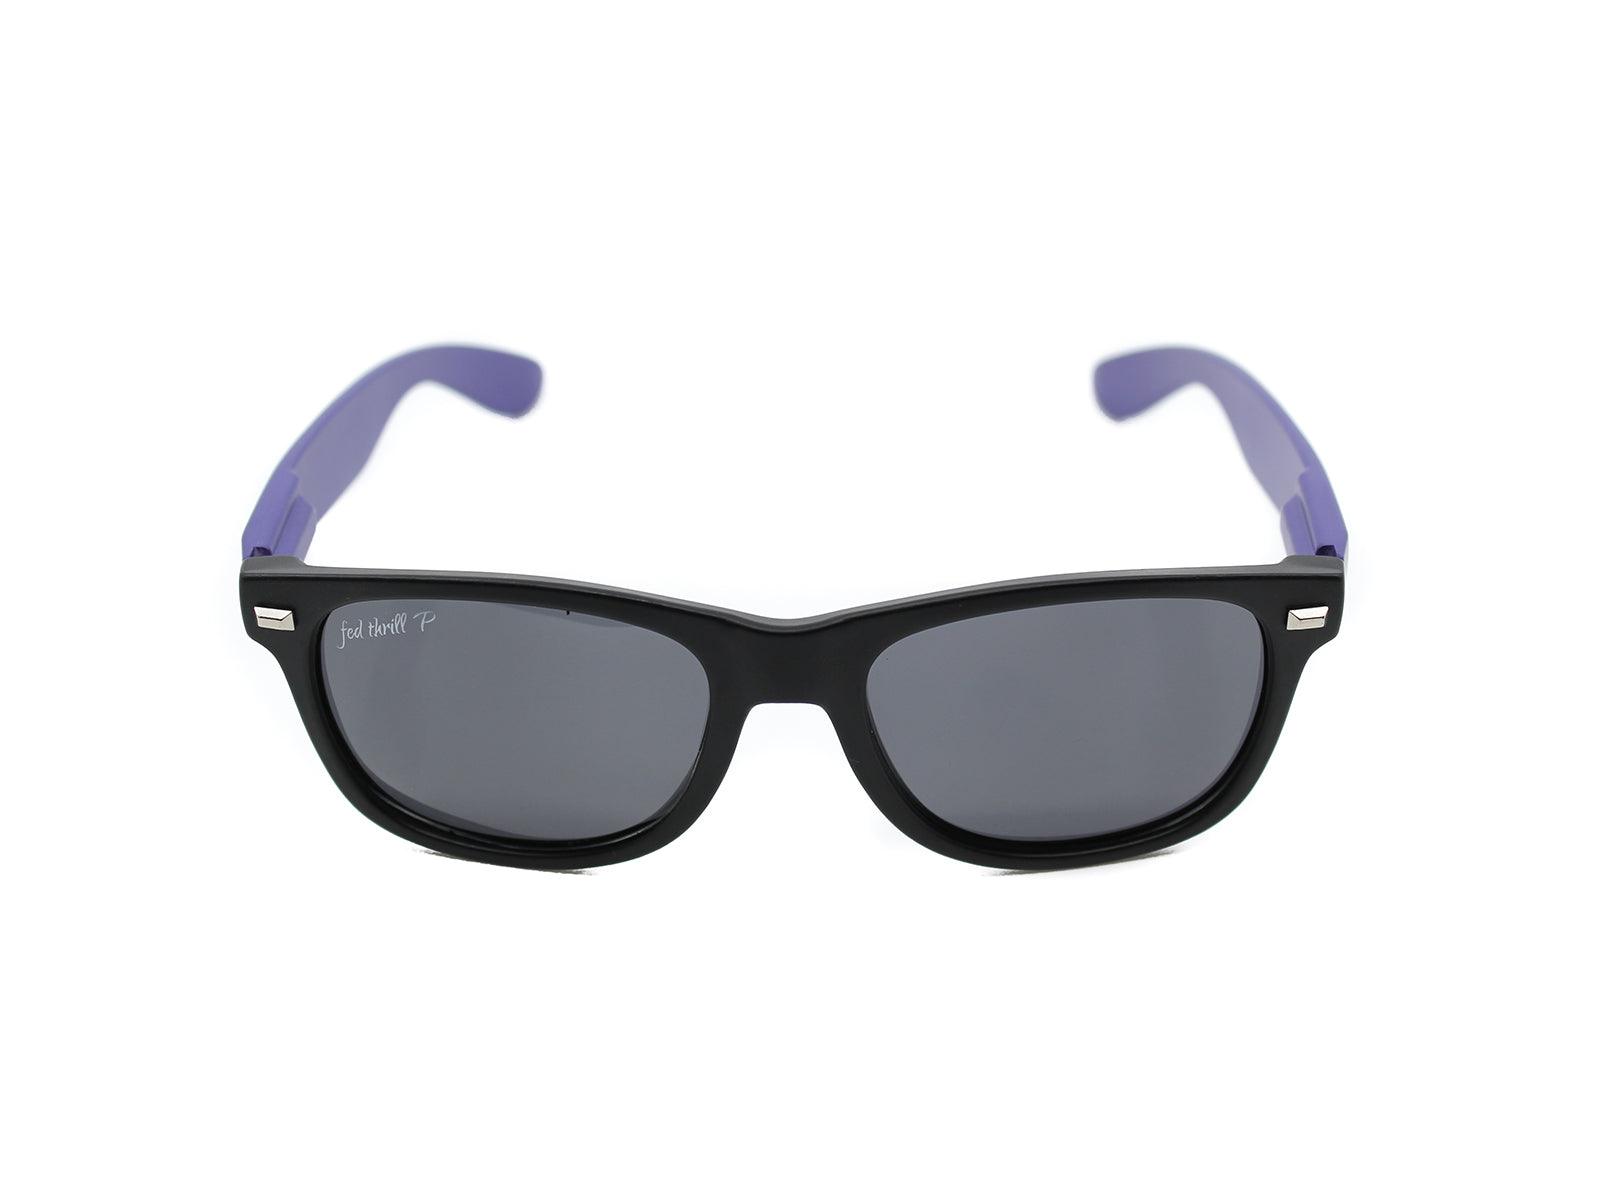 Fultons - Jupiters: Matte Black / Purple / Smoke Polarized